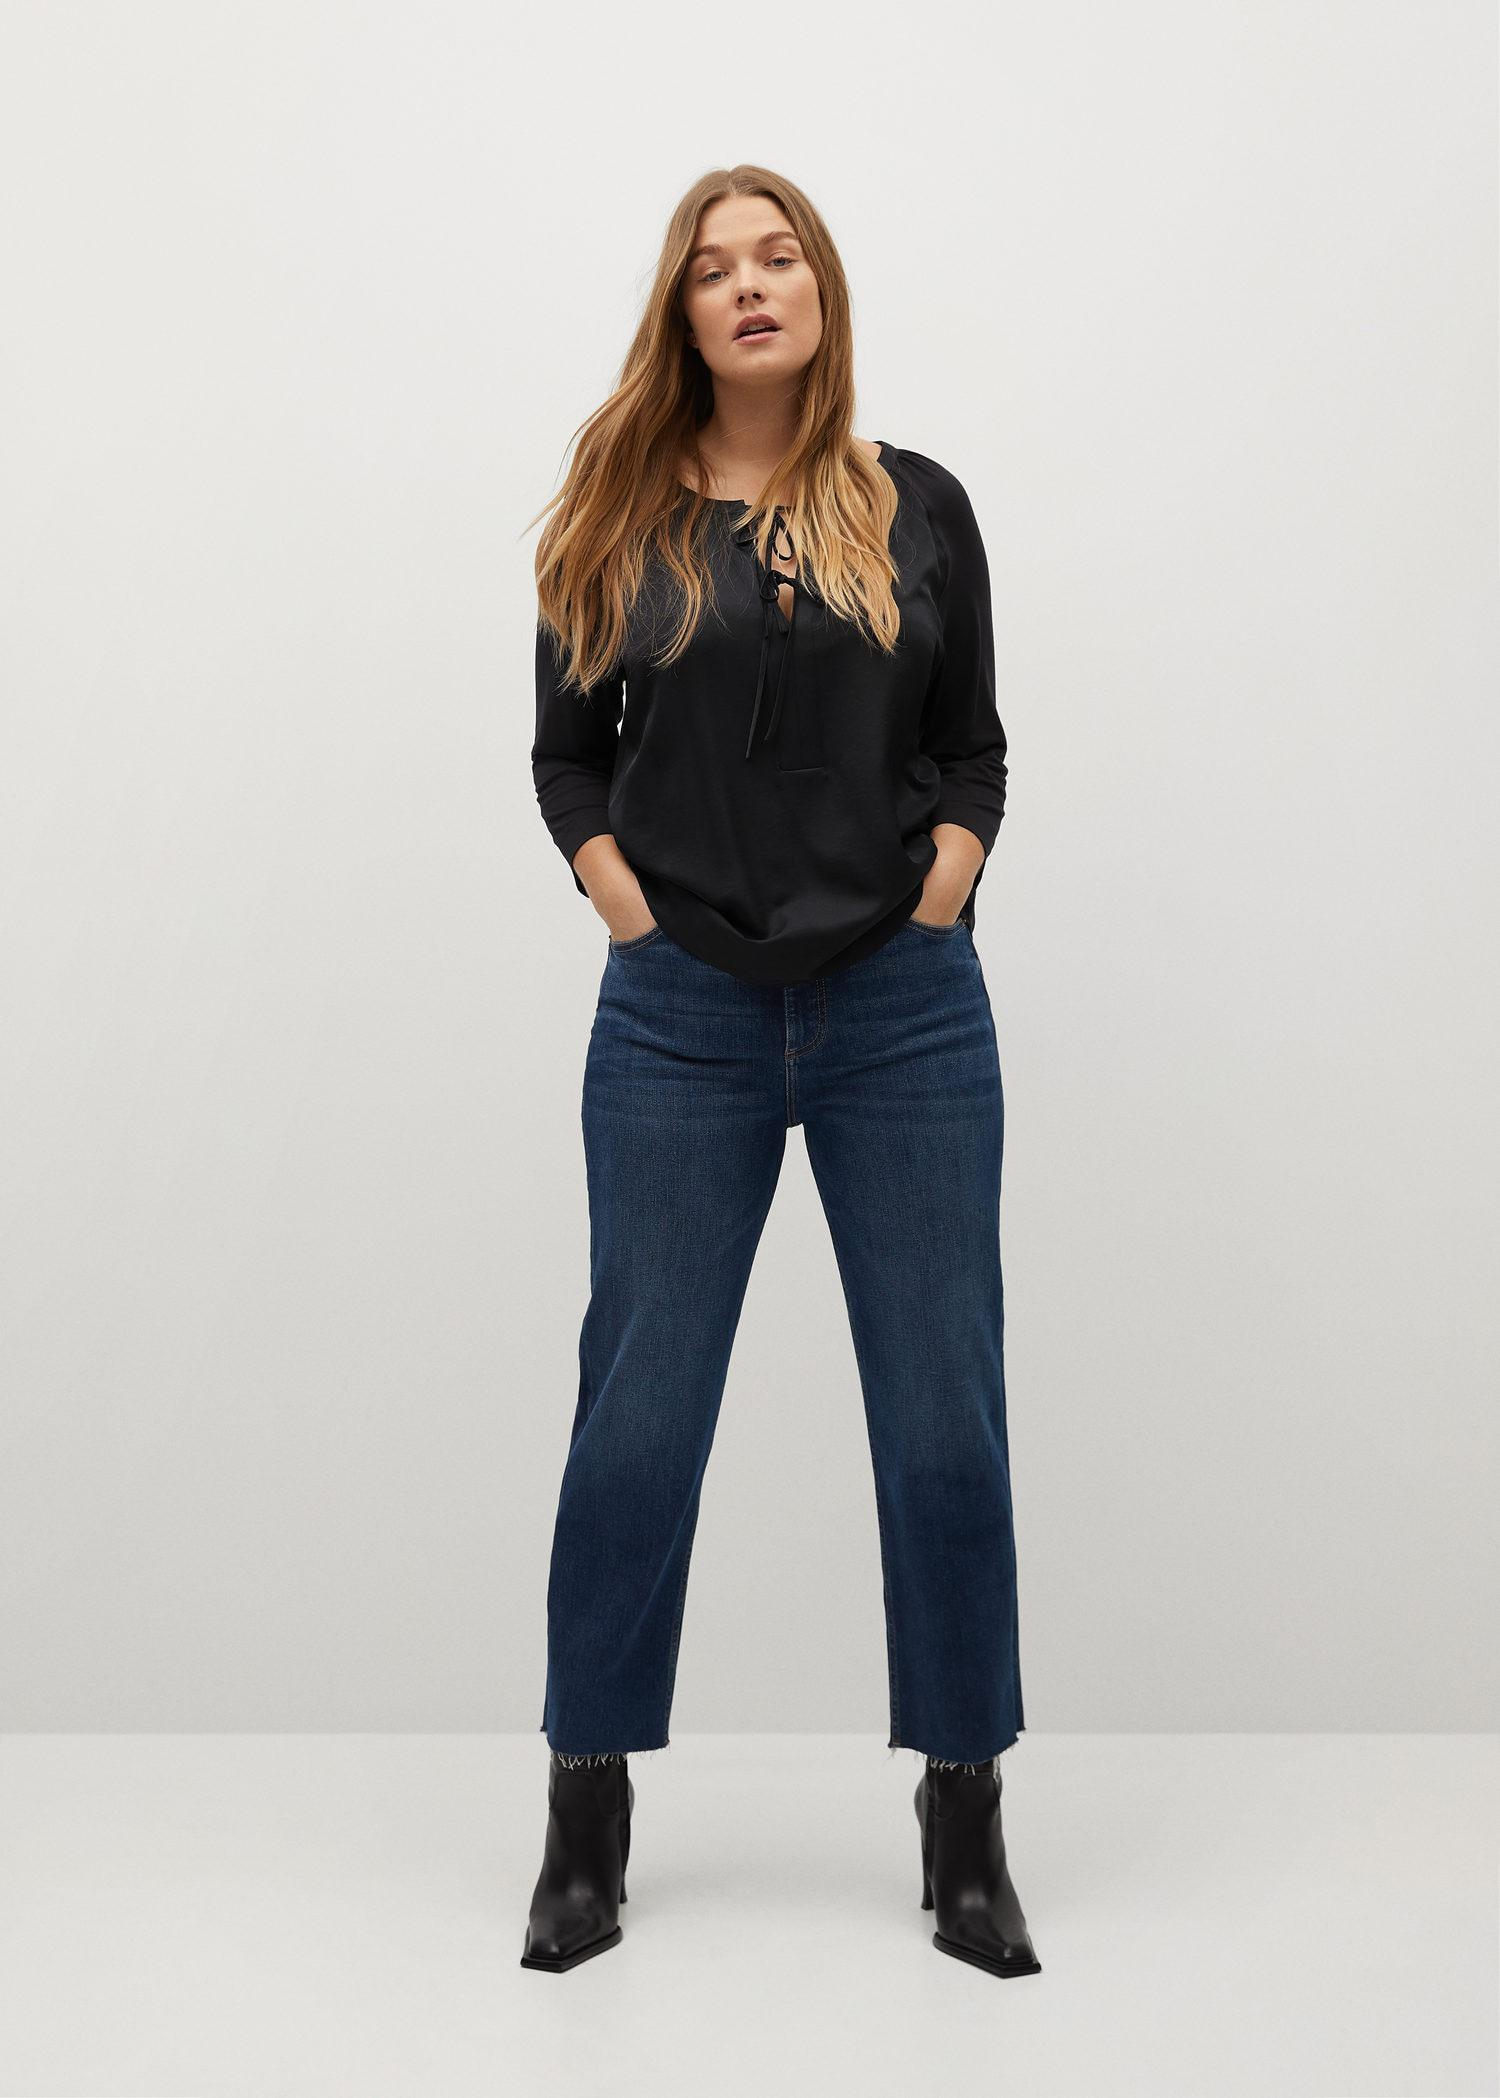 Long-sleeved t-shirt with bows